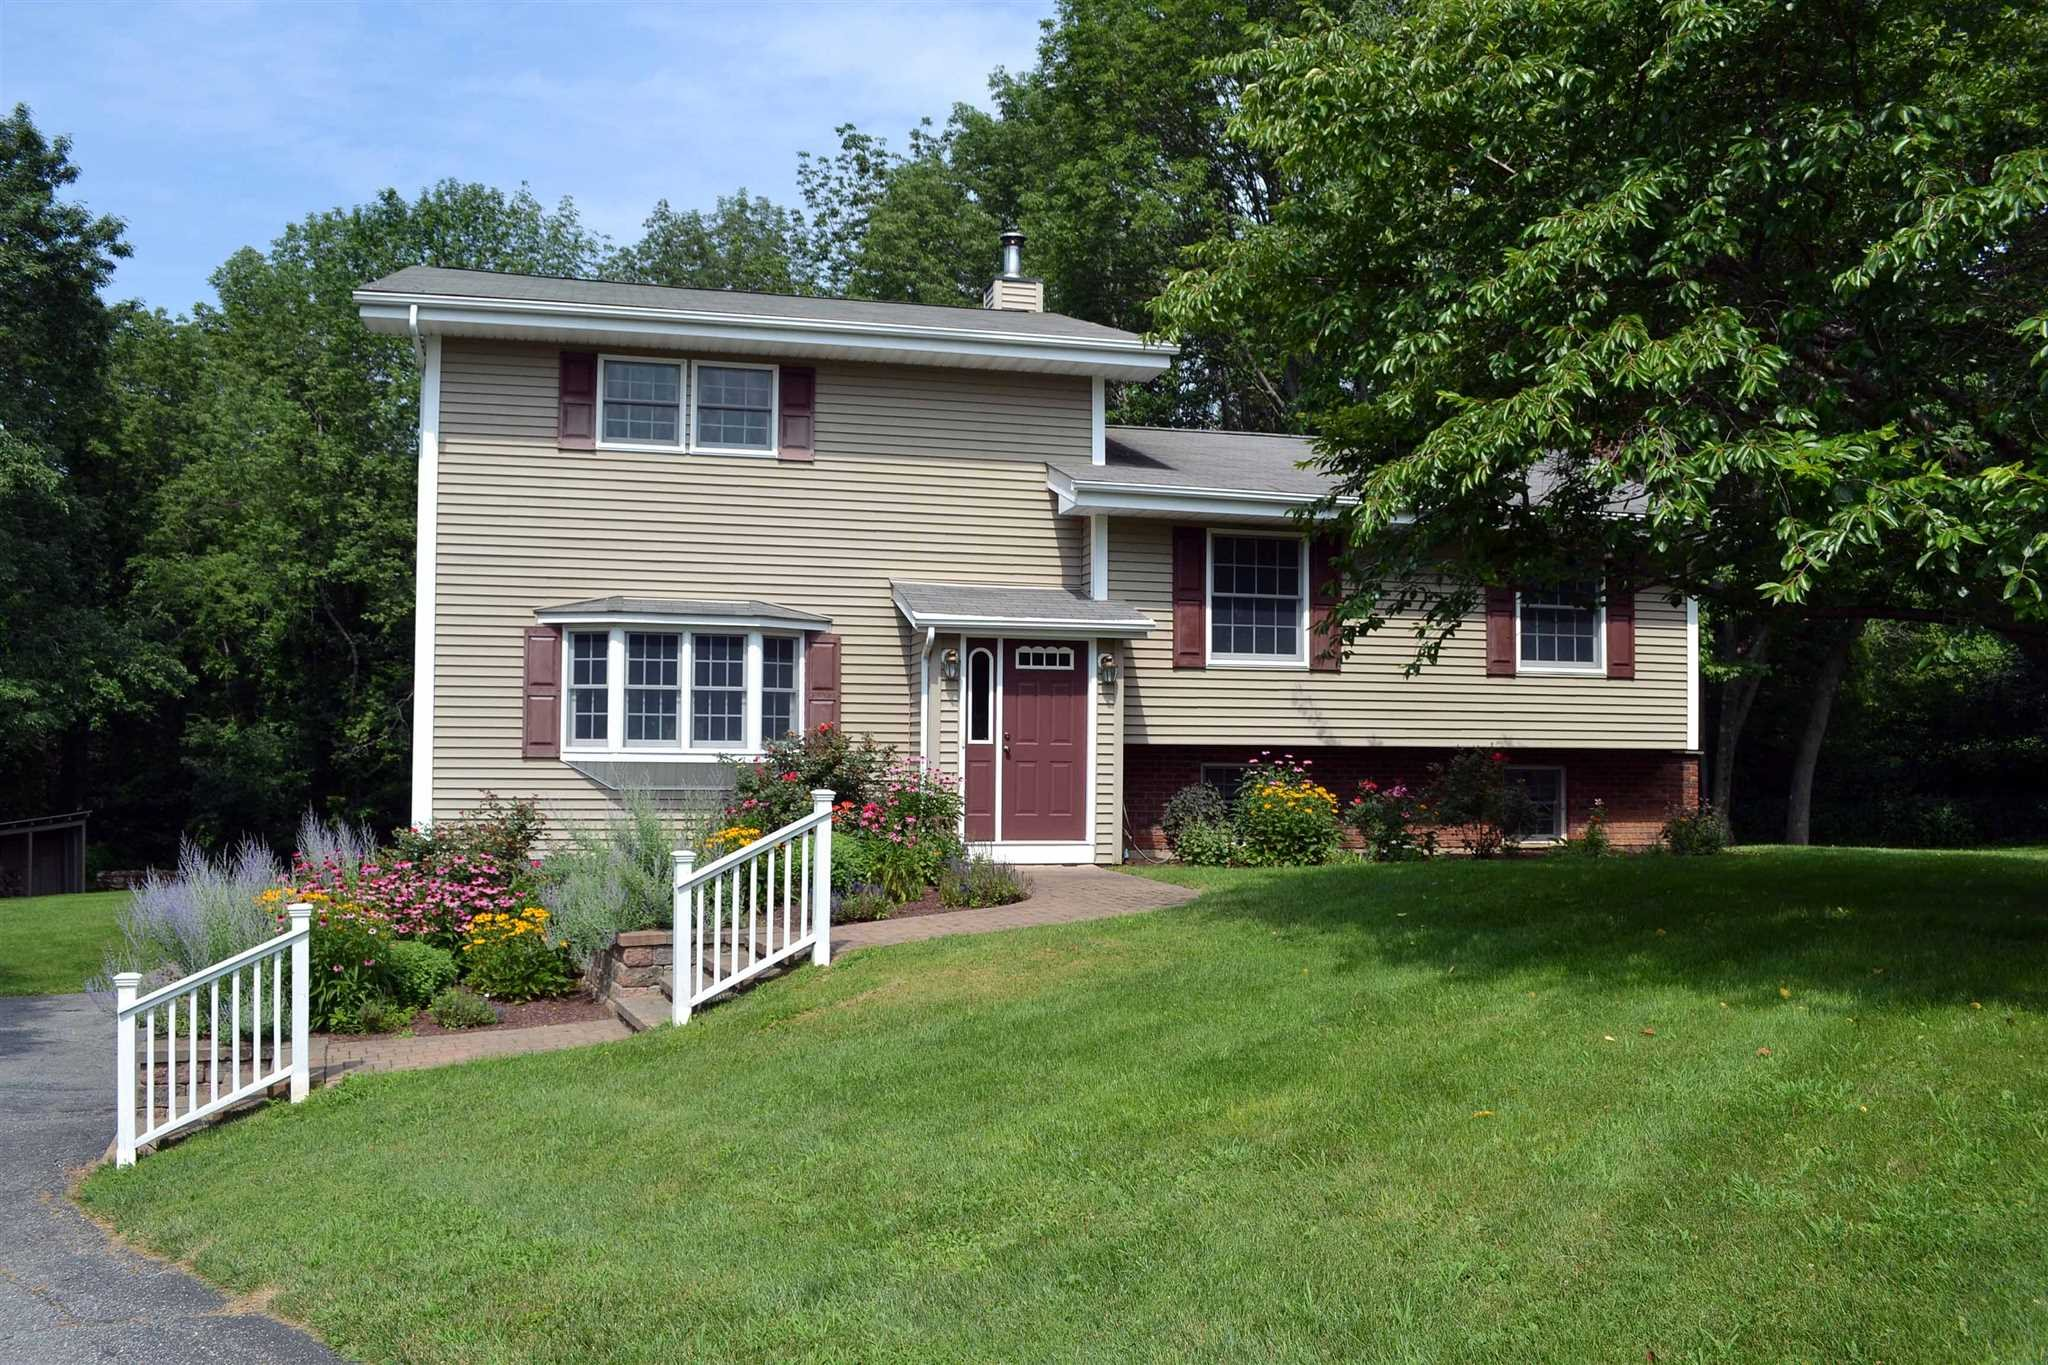 Single Family Home for Sale at 47 HI-VIEW Drive 47 HI-VIEW Drive Dover Plains, New York 12594 United States